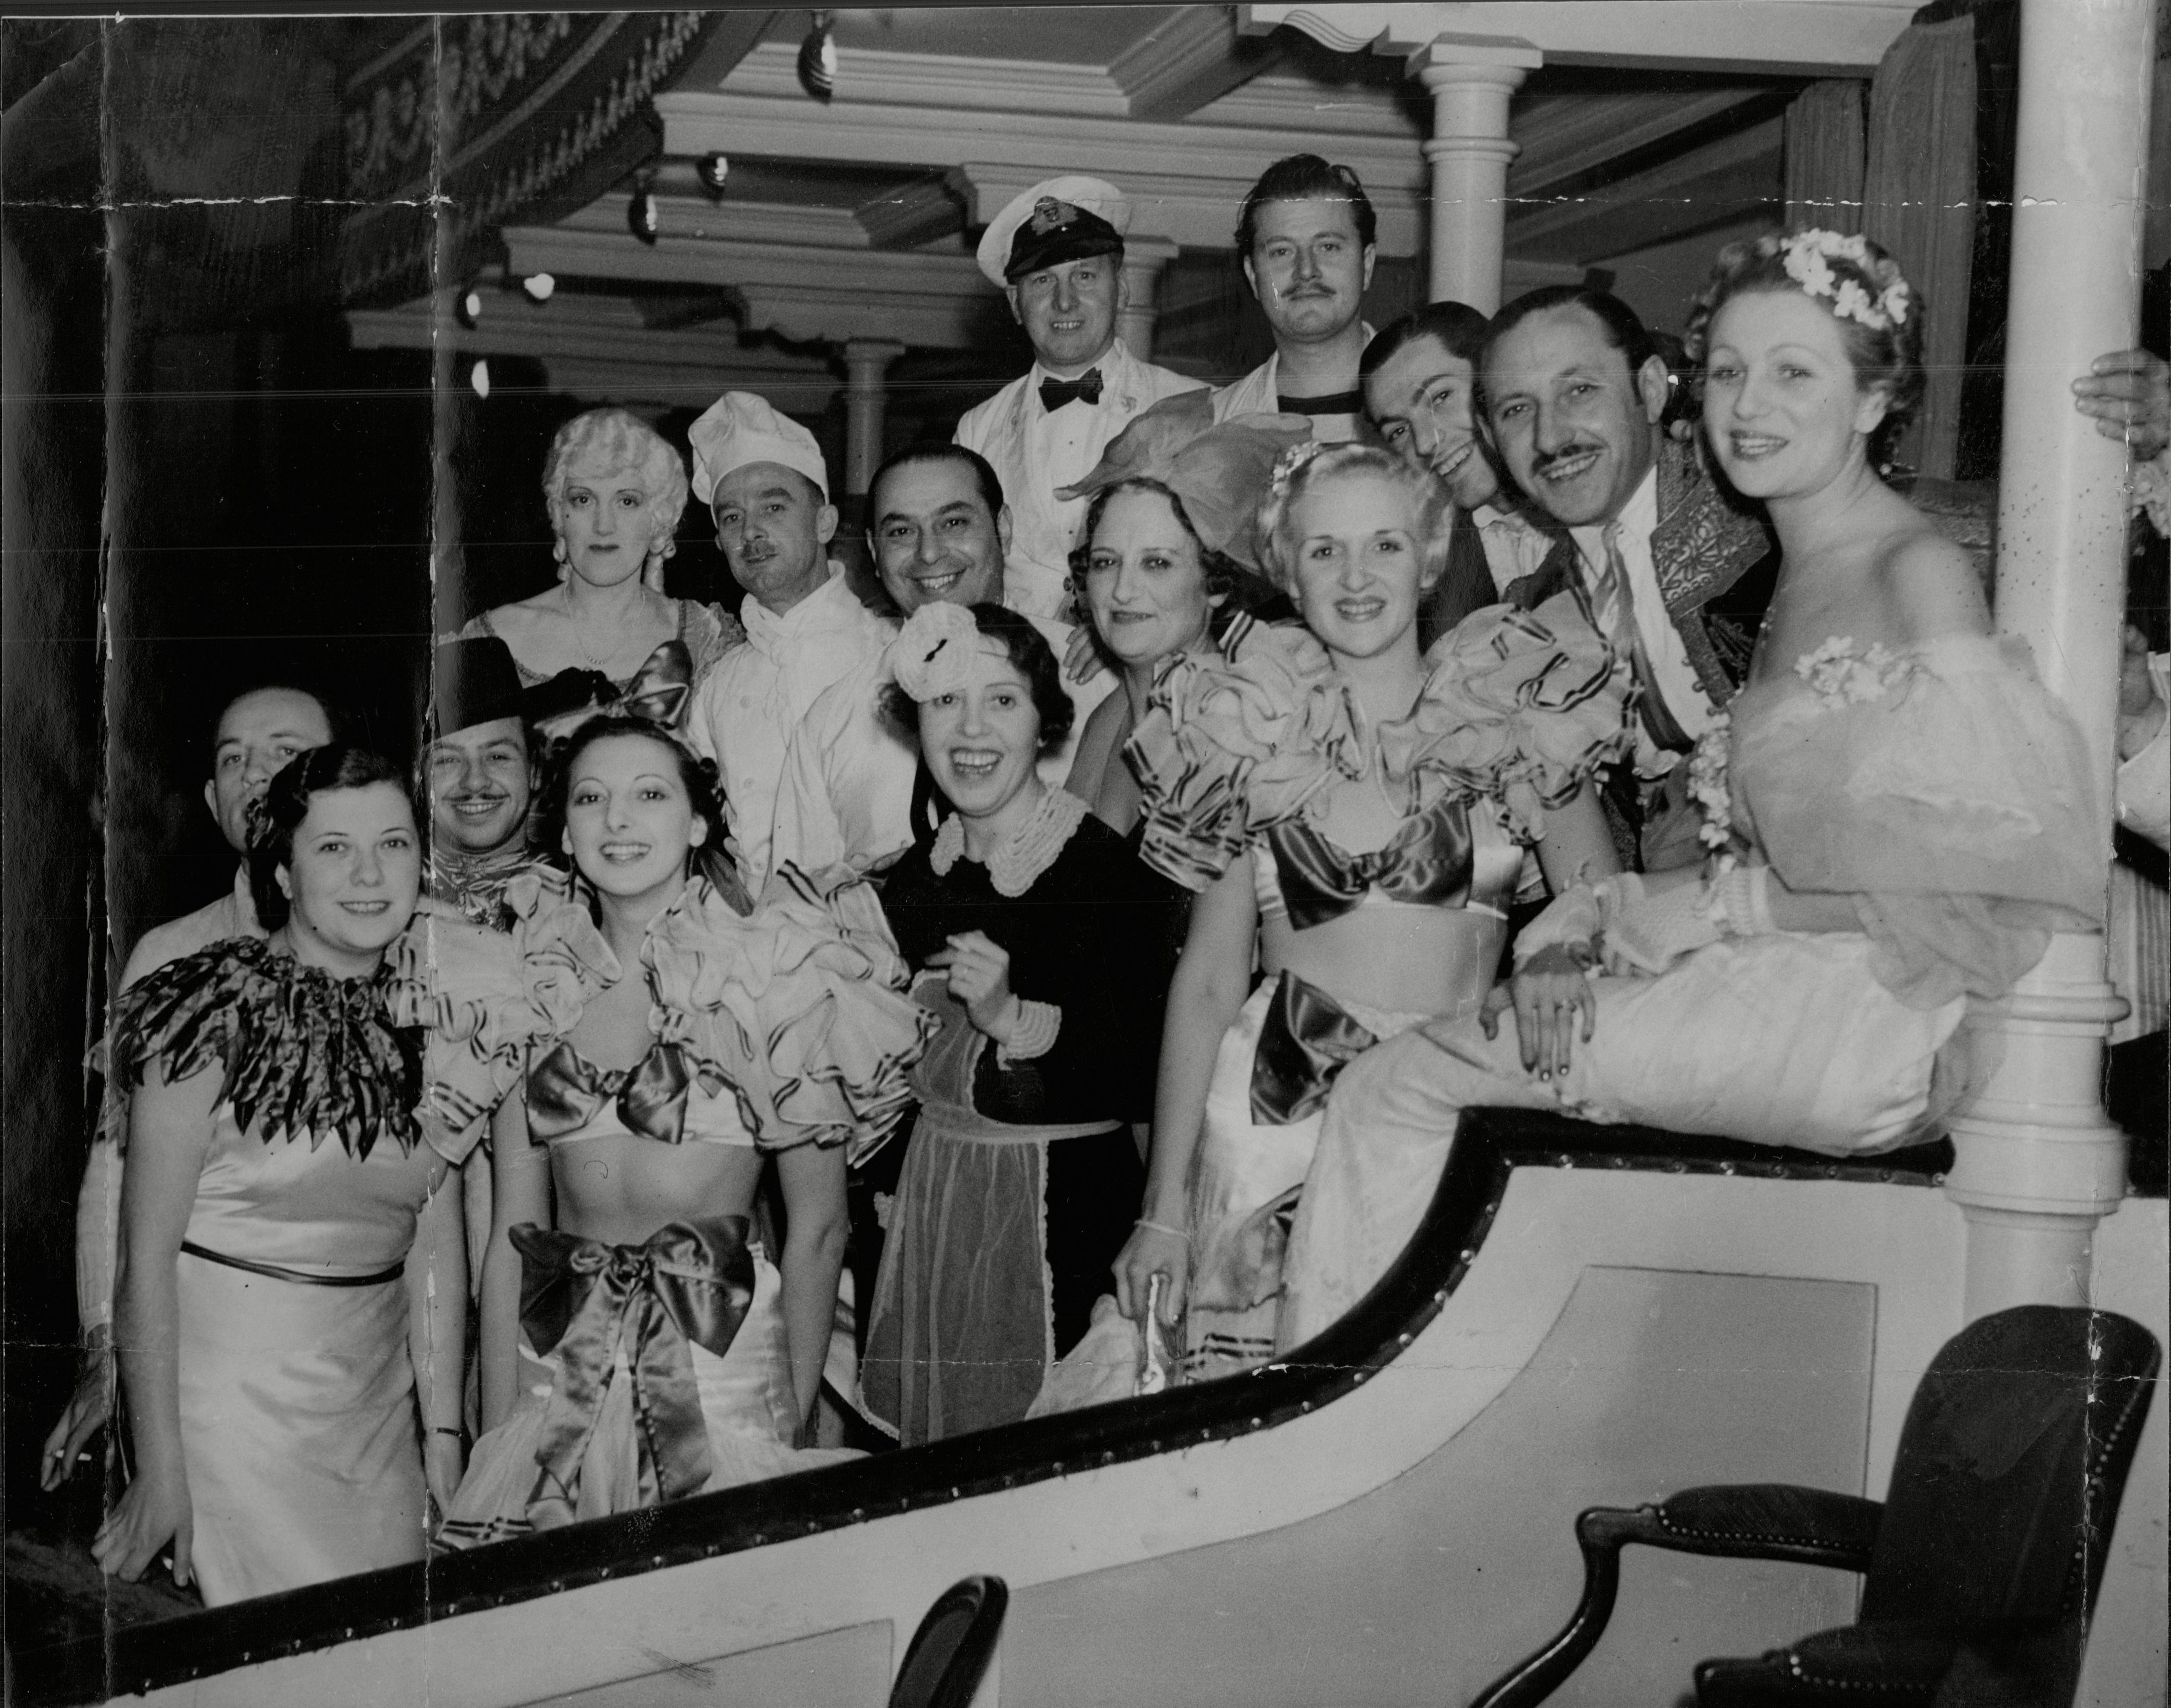 Smiling Faces At The Chelsea Arts Ball At The Royal Albert Hall In London On New Year's Eve. 31 Dec 1935